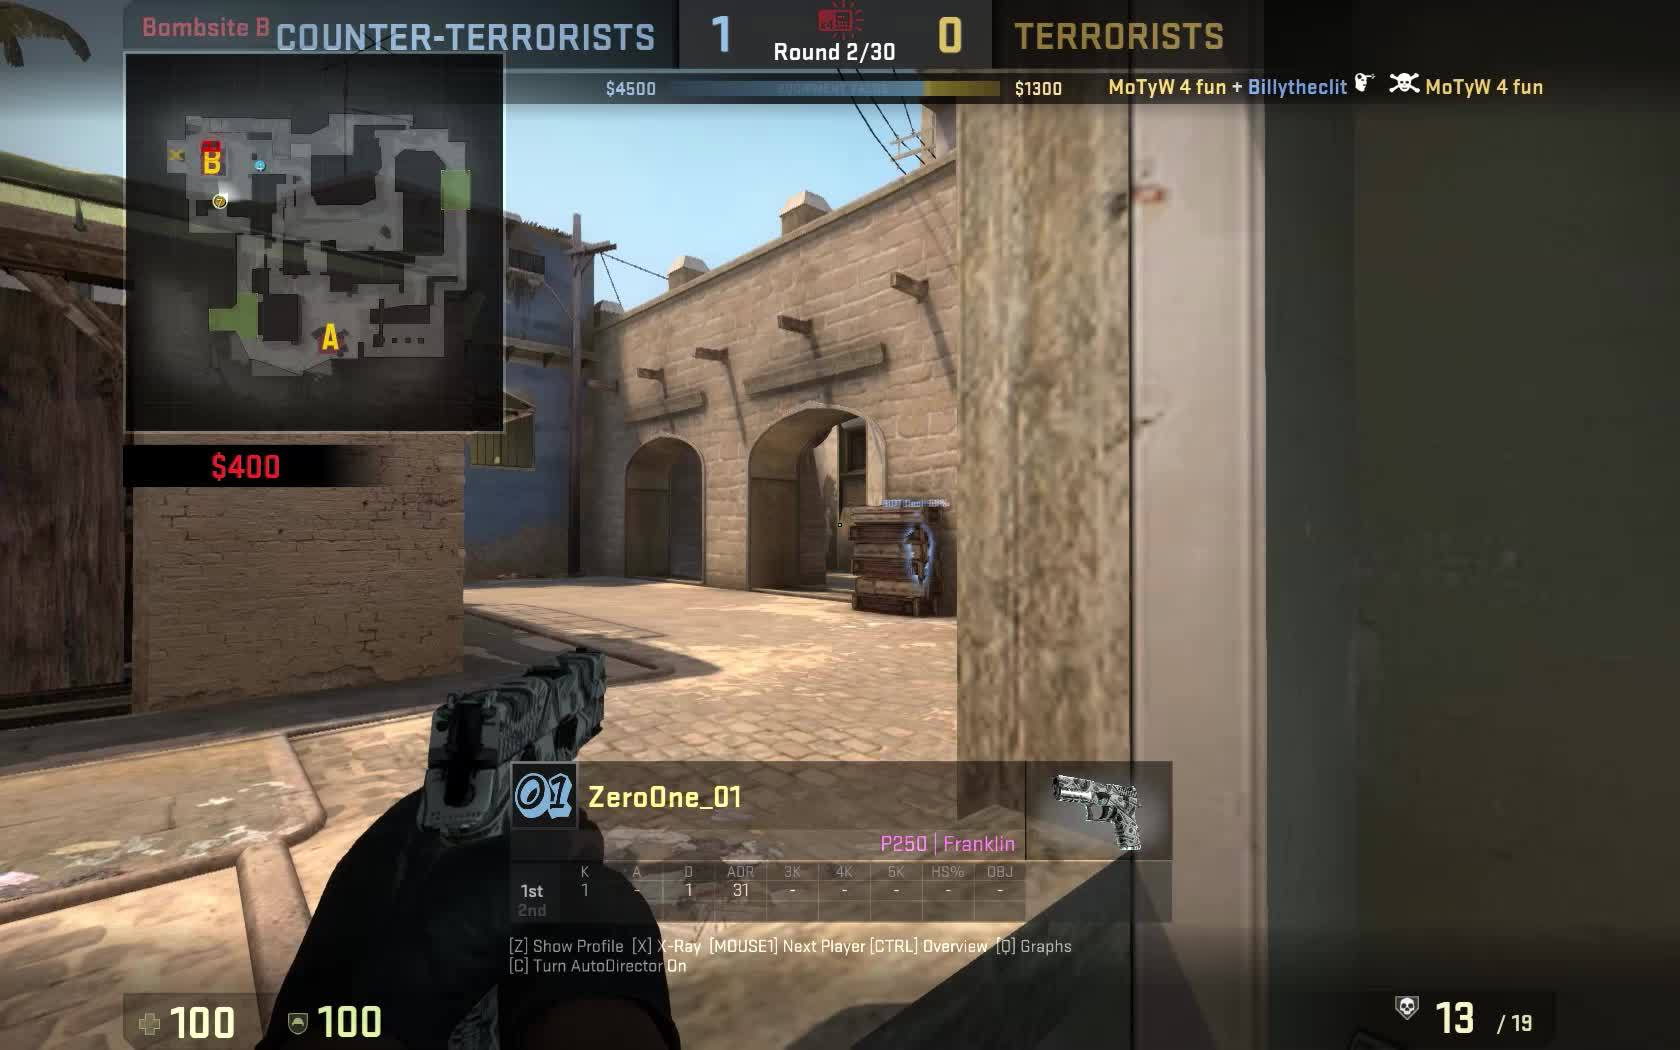 csgo, gaming, globaloffensive, Its good to know your way around the map sometimes. GIFs